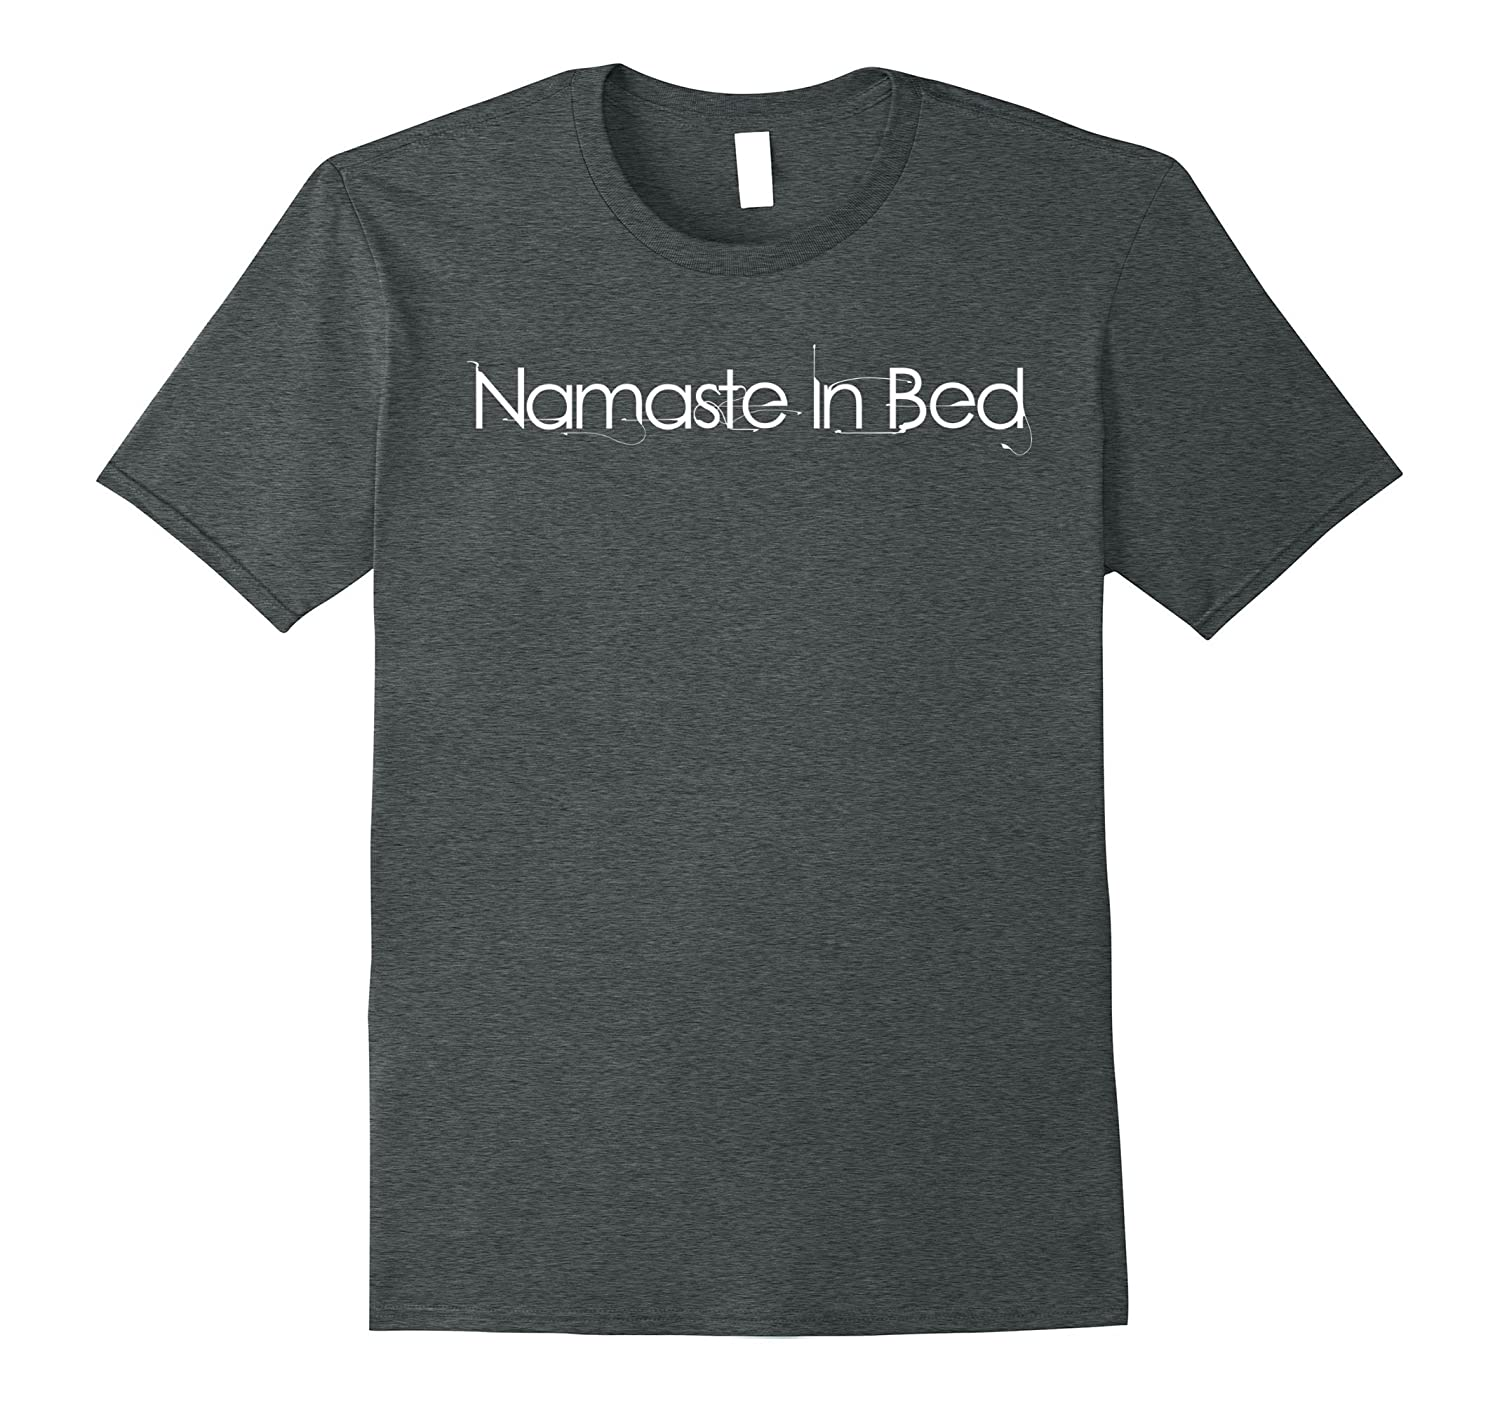 Namaste in bed funny yoga t shirt